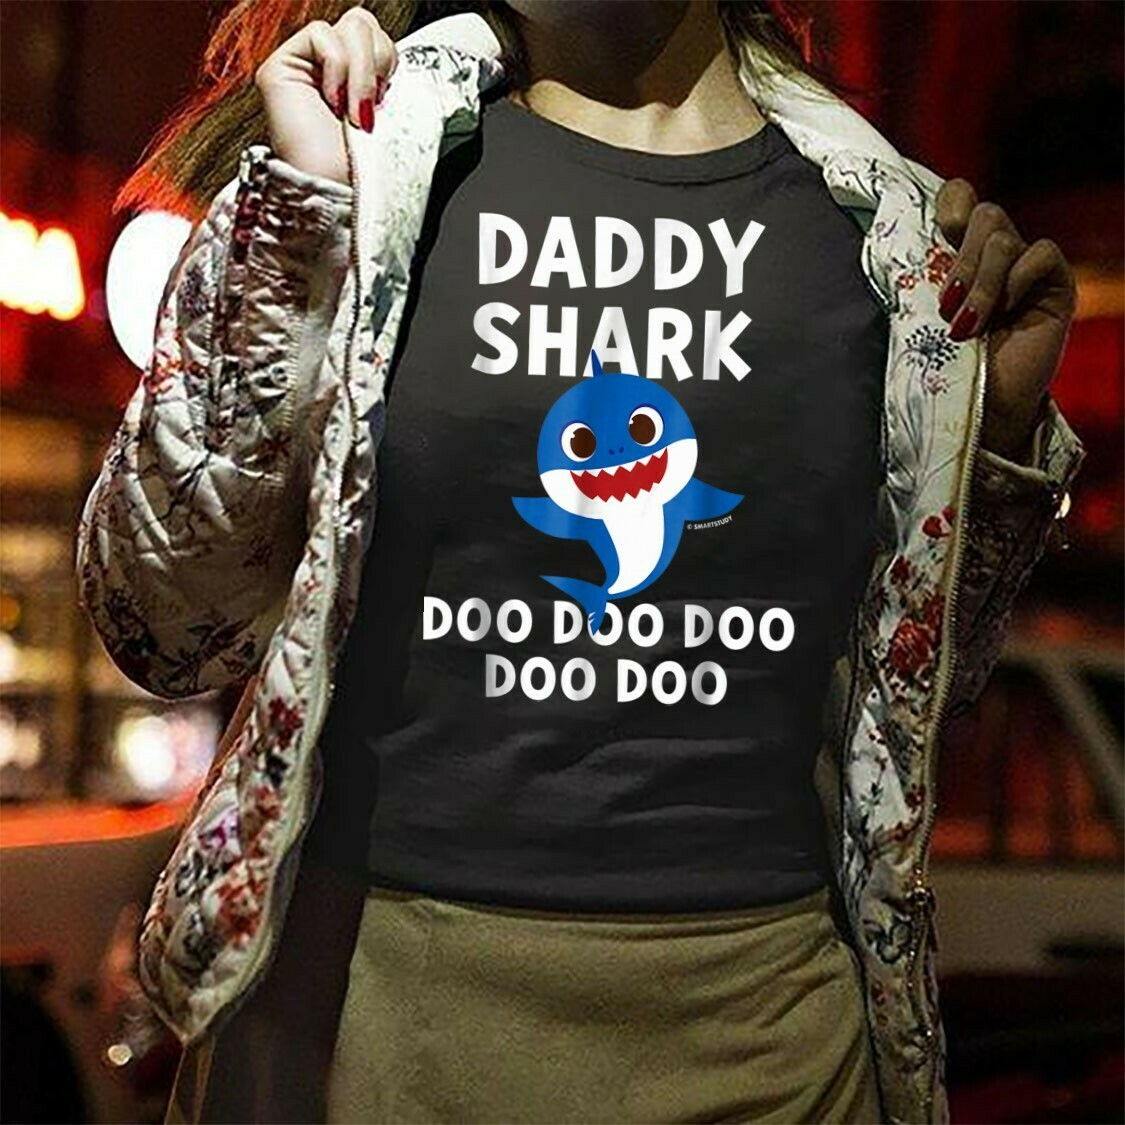 Daddy Shark Pinkfong Toddler Baby Shark Doo Doo Doo Family Vacation Birthday Shark Mommy Daddy Grandma Sister Brother Shark s T-Shirt Sweatshirt Hoodie Long Sleeve Tee Kids Youth Gifts Jolly Family